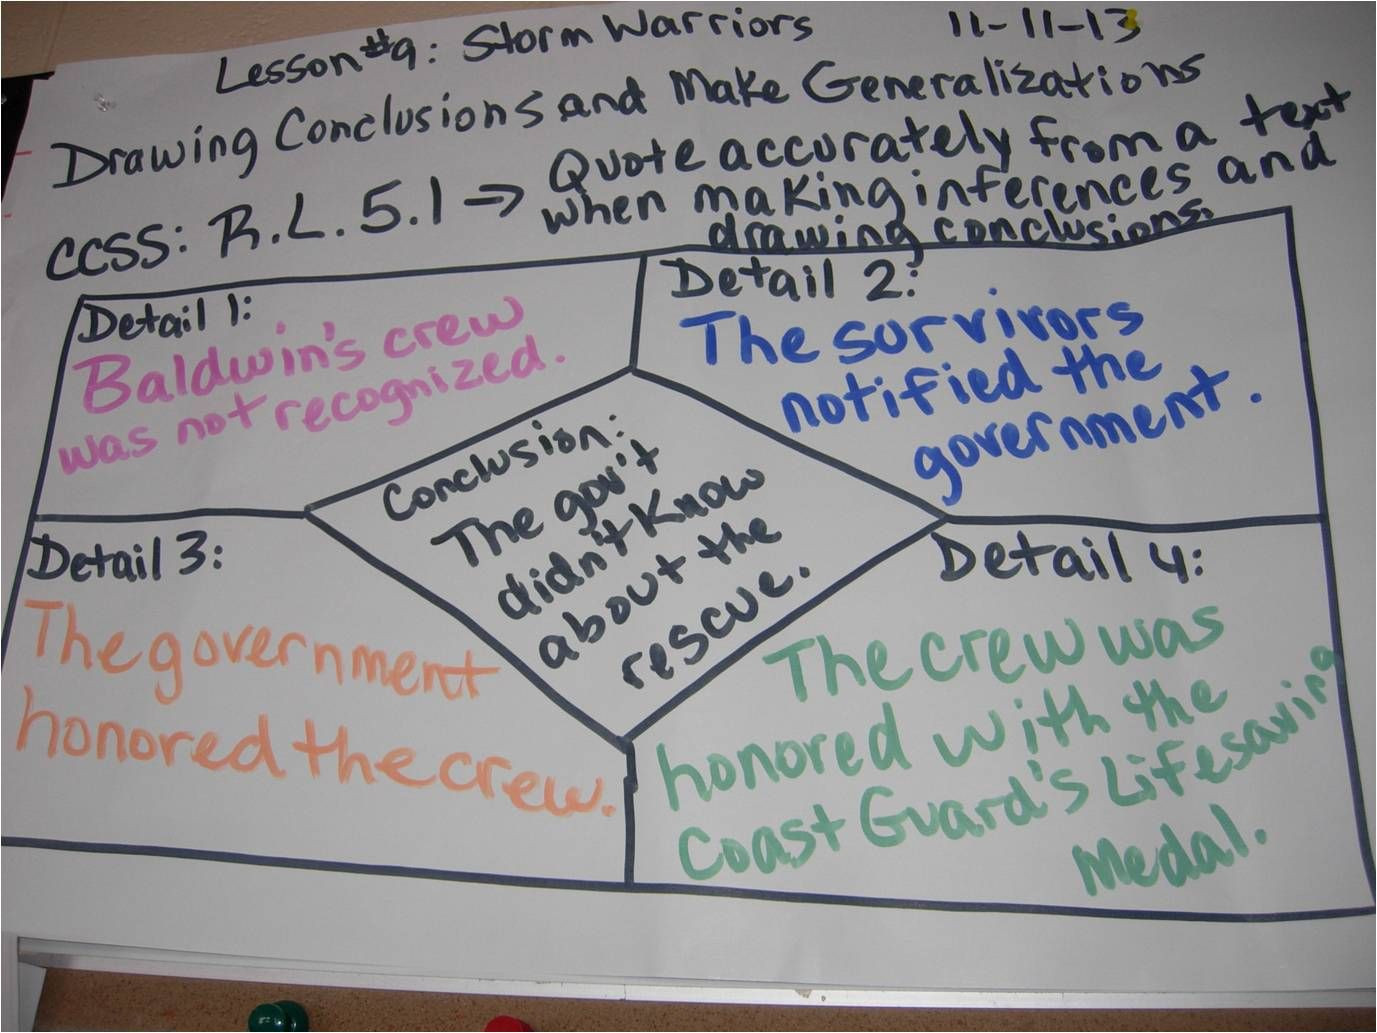 Making Generalizations Worksheets 5th Grade Ccss R L 5 1 Storm Warriors Drawing Conclusions and Making